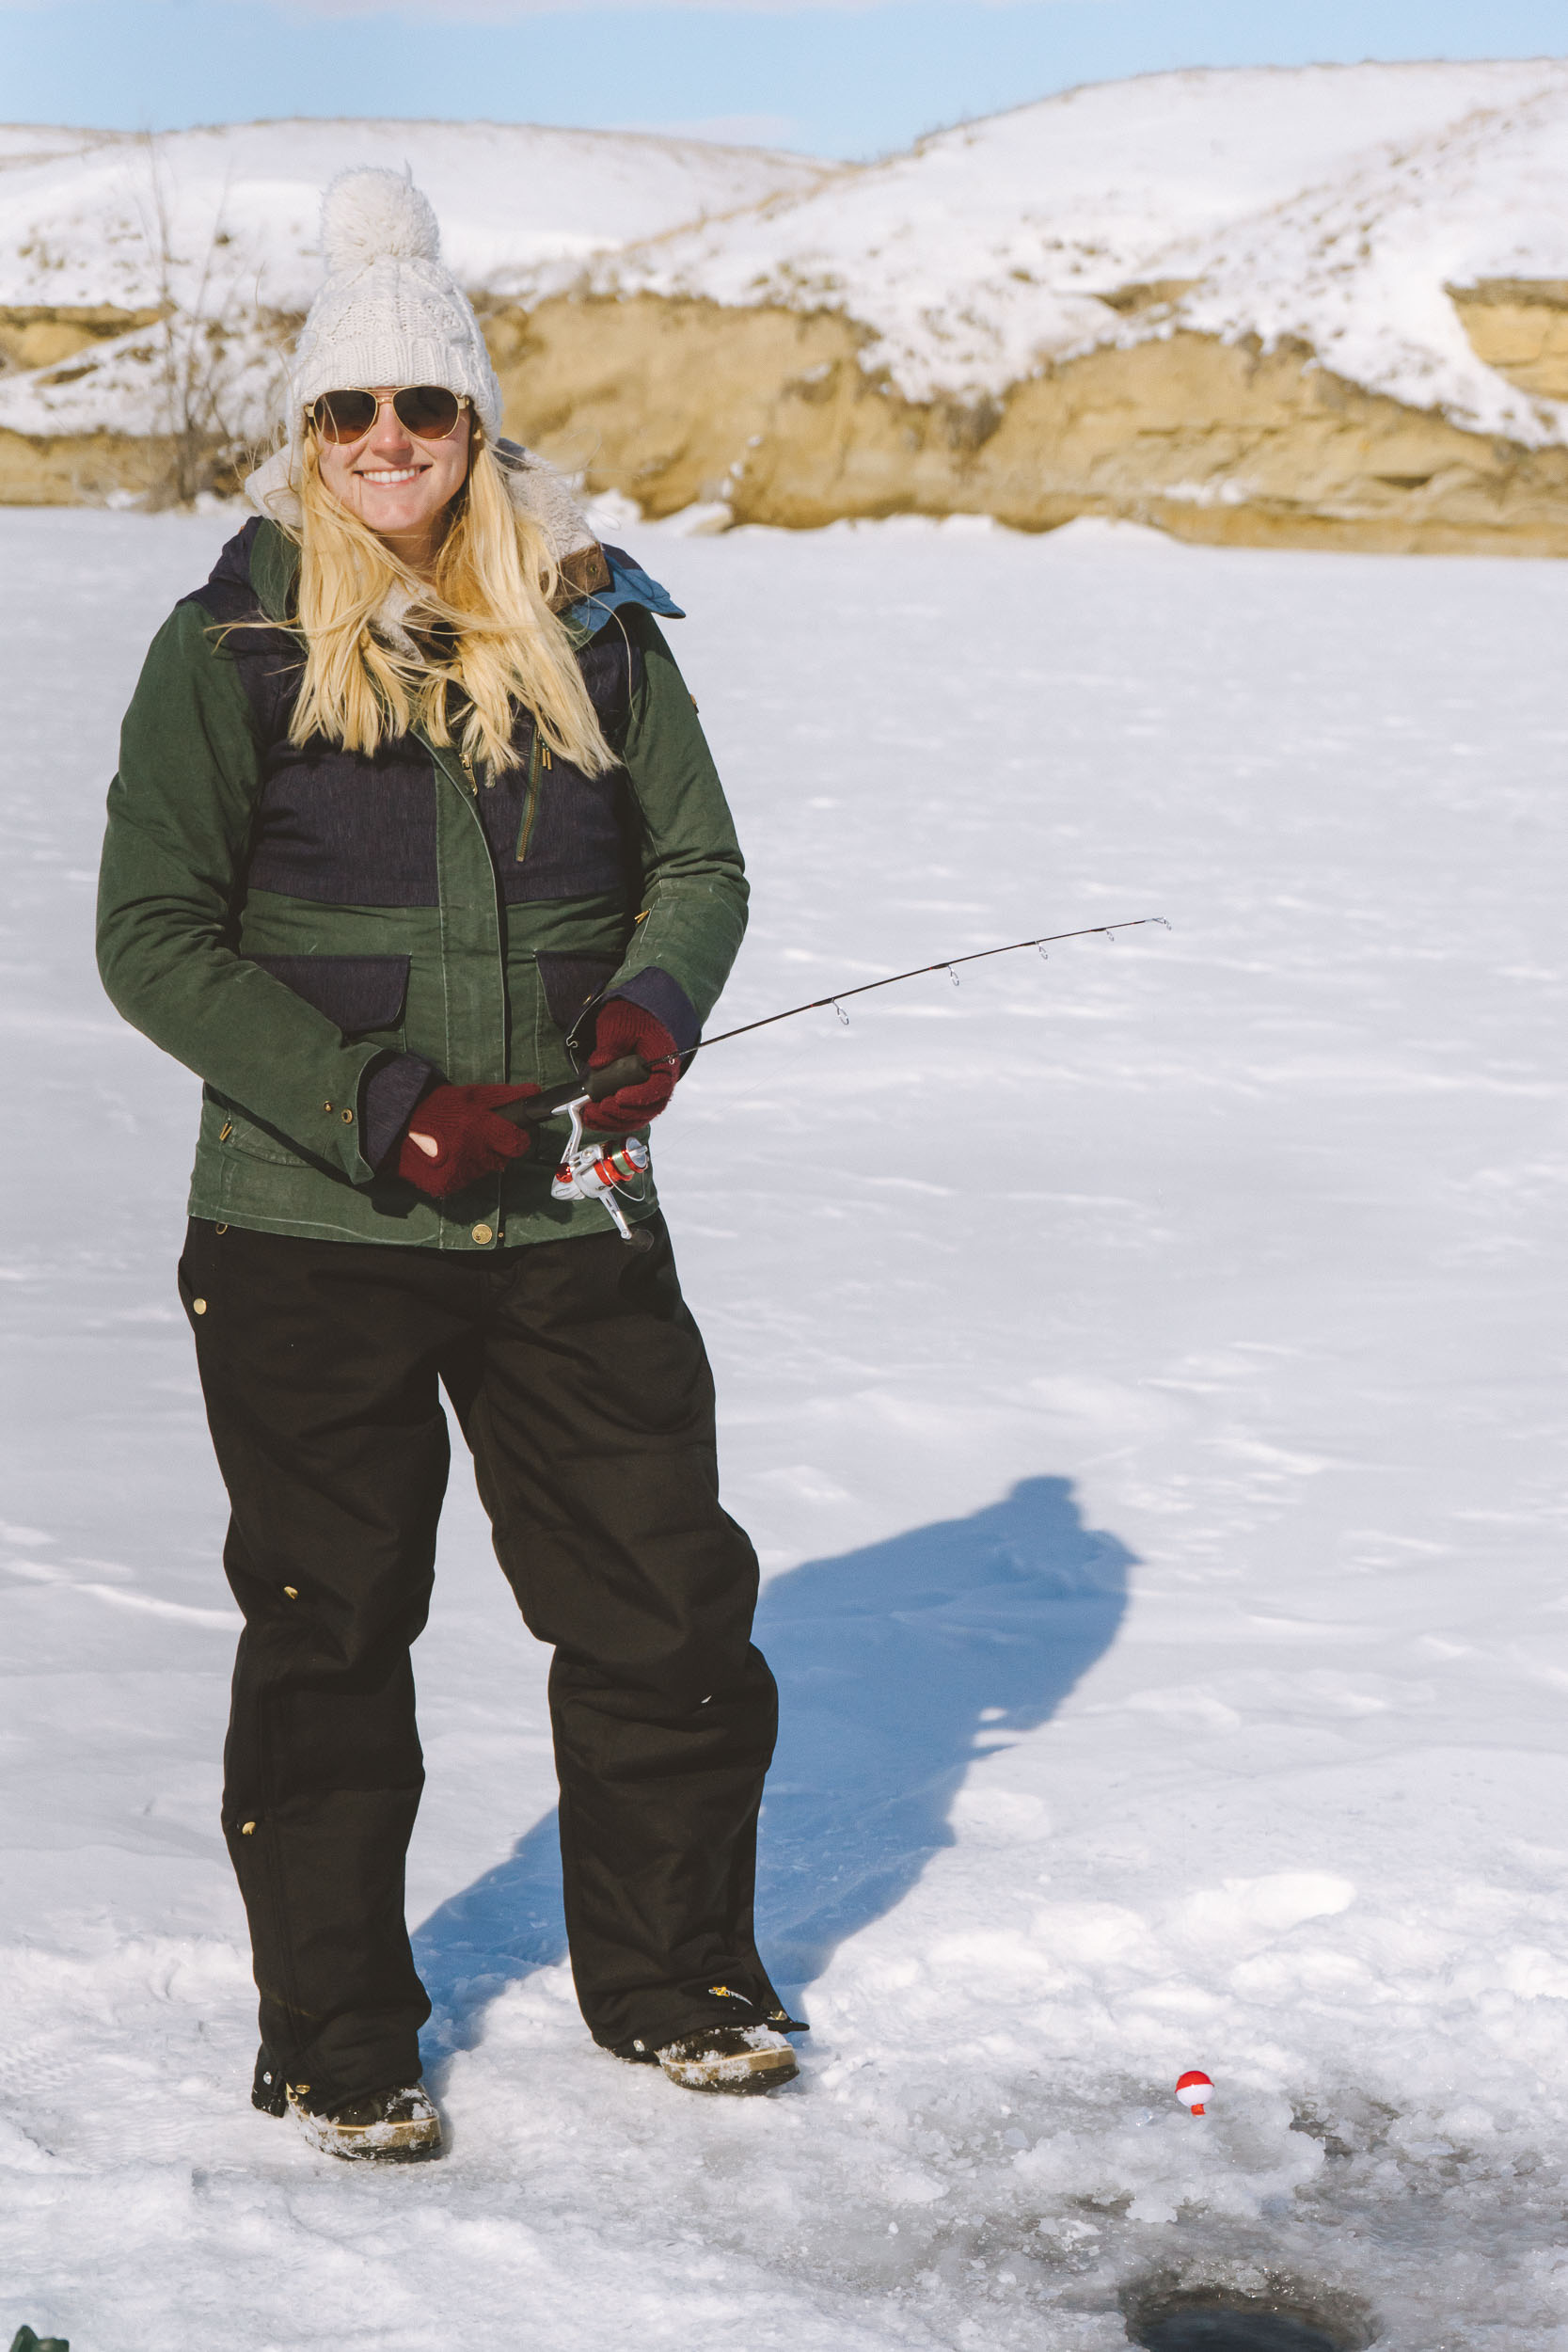 Adventure blogger Bri Sul ice fishing at Petrolia Lake near Winnett, Montana. Wearing Coach sunglasses, a Roxy coat, and the warmest Carhartt bibs.